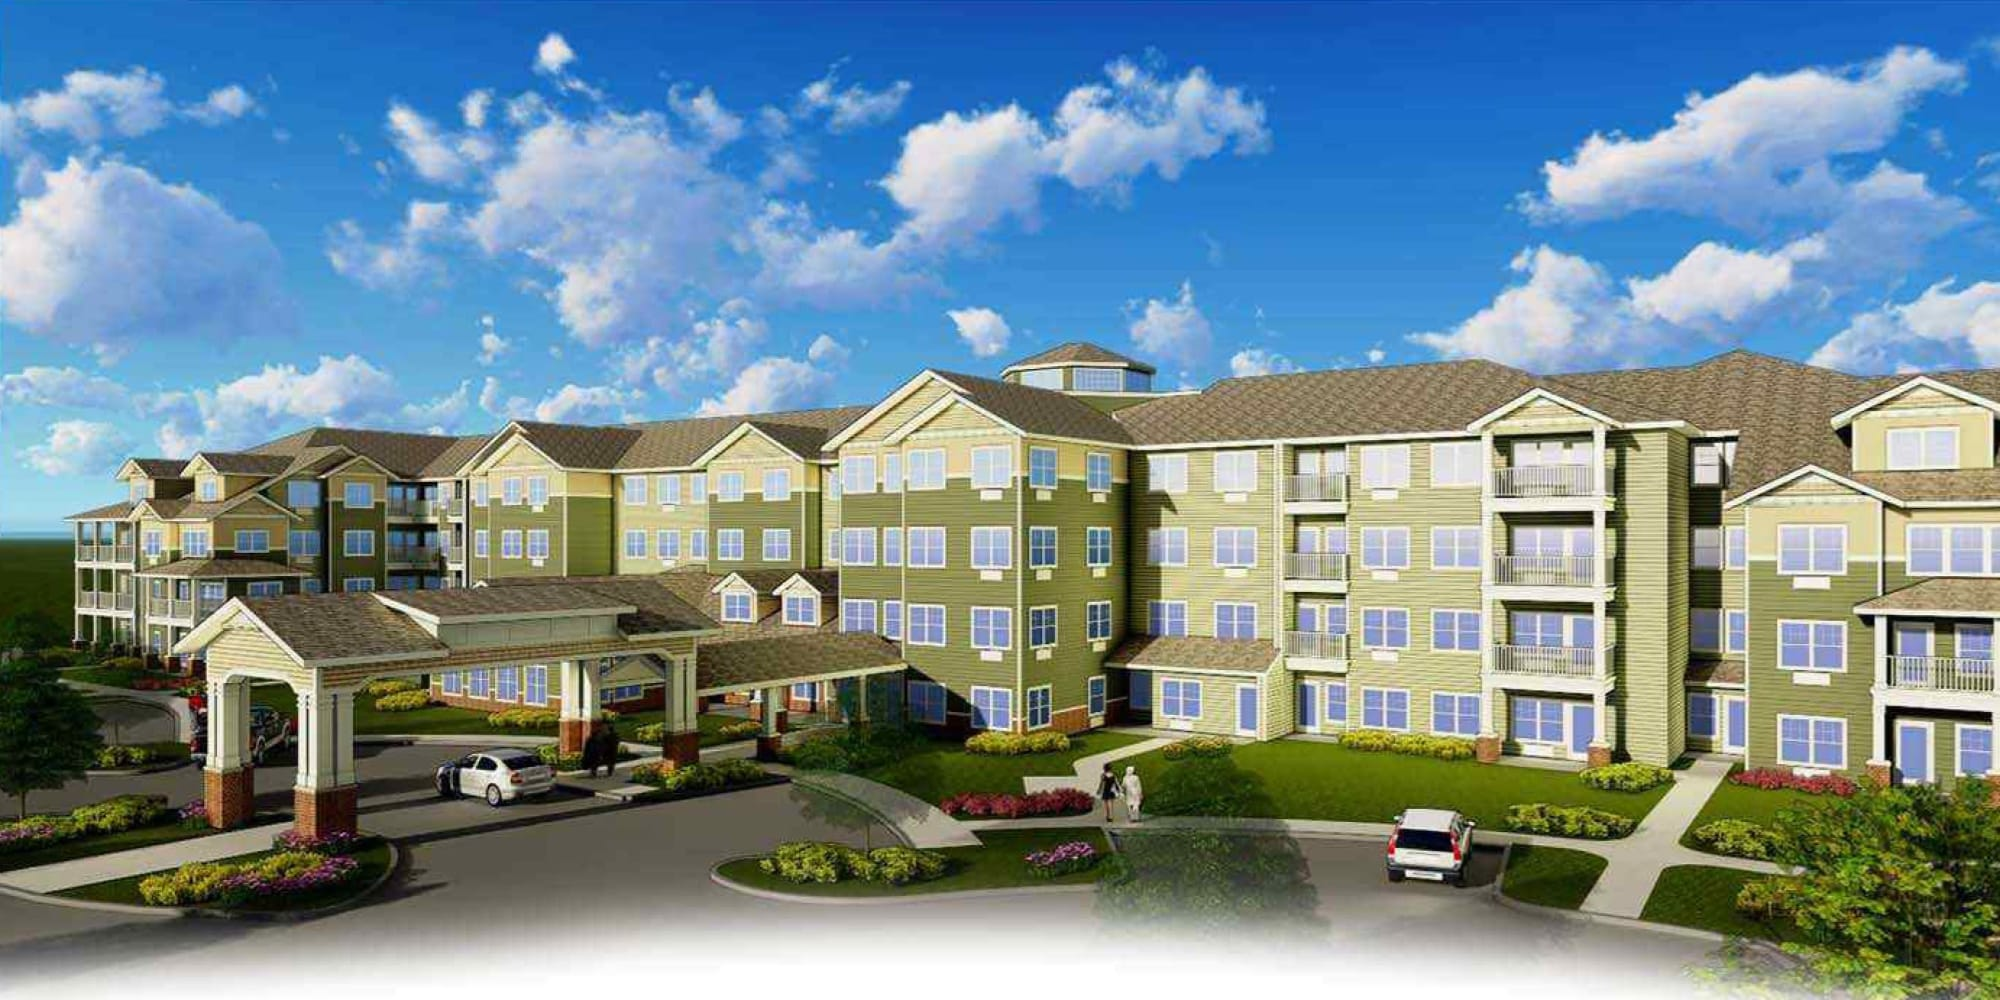 Rendering for Camellia Gardens Gracious Retirement Living in Maynard, Massachusetts